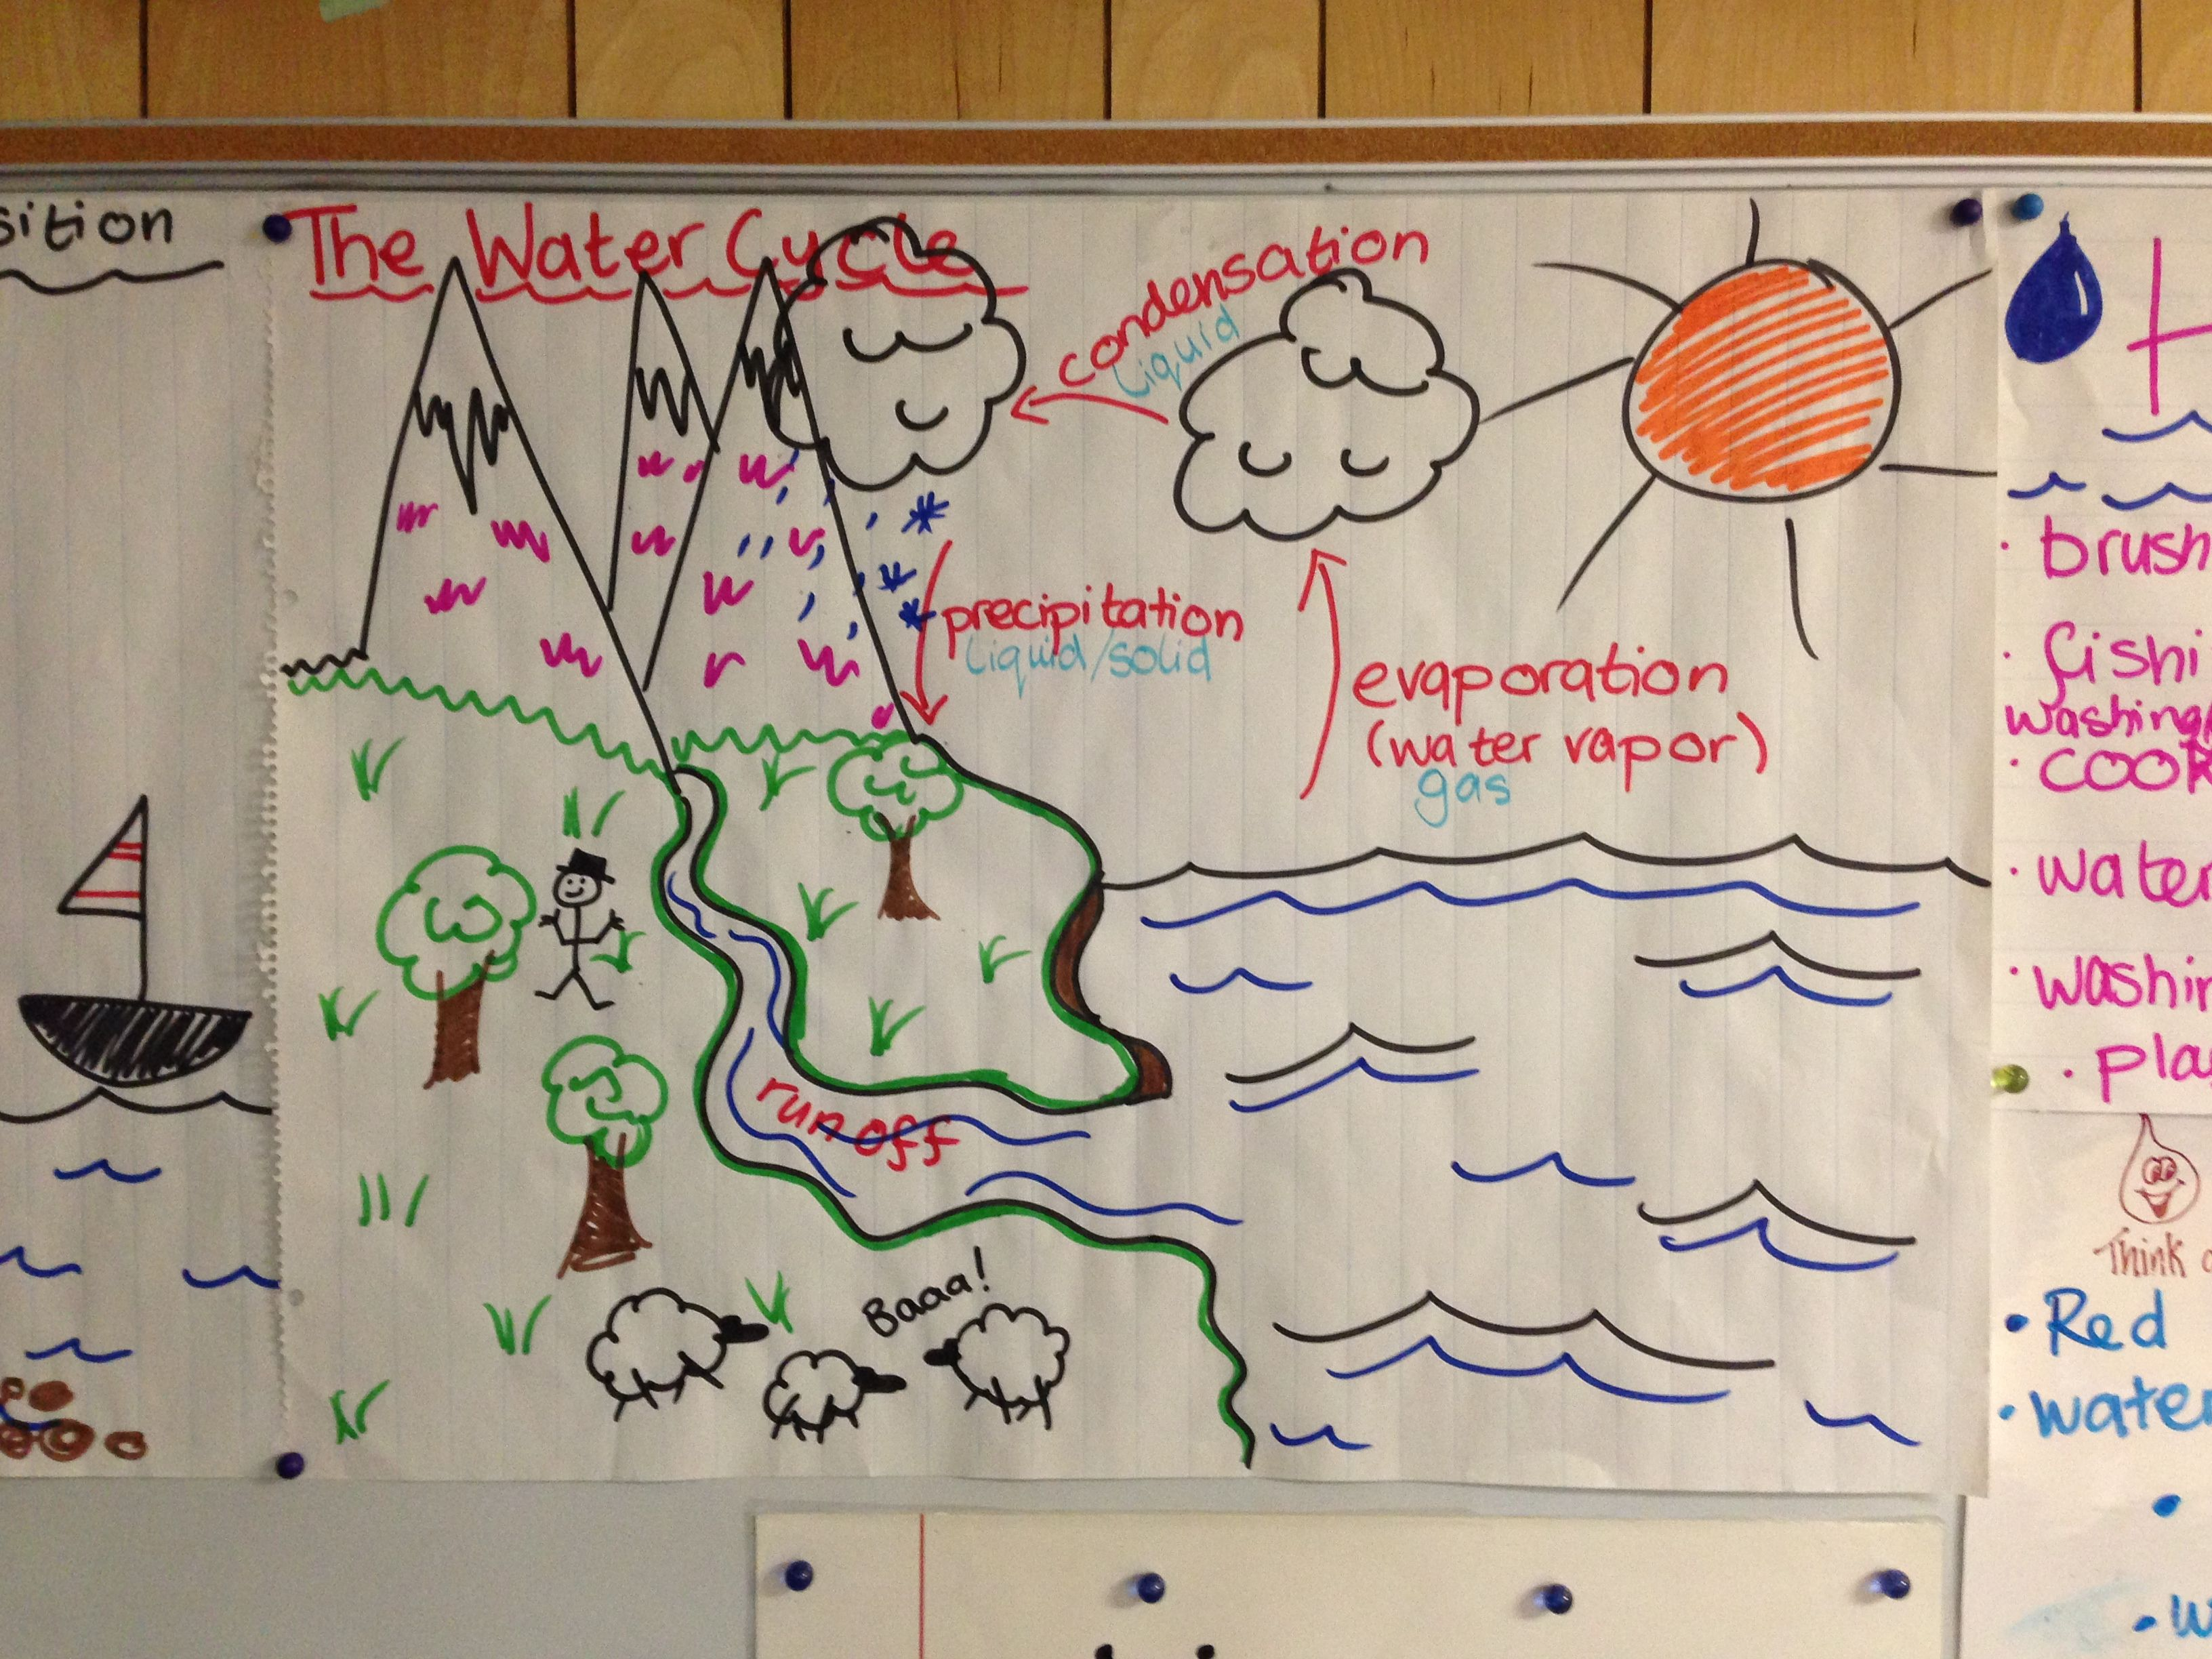 The water cycle poster 4th grade science pinterest preschool the water cycle poster 4th grade ccuart Choice Image